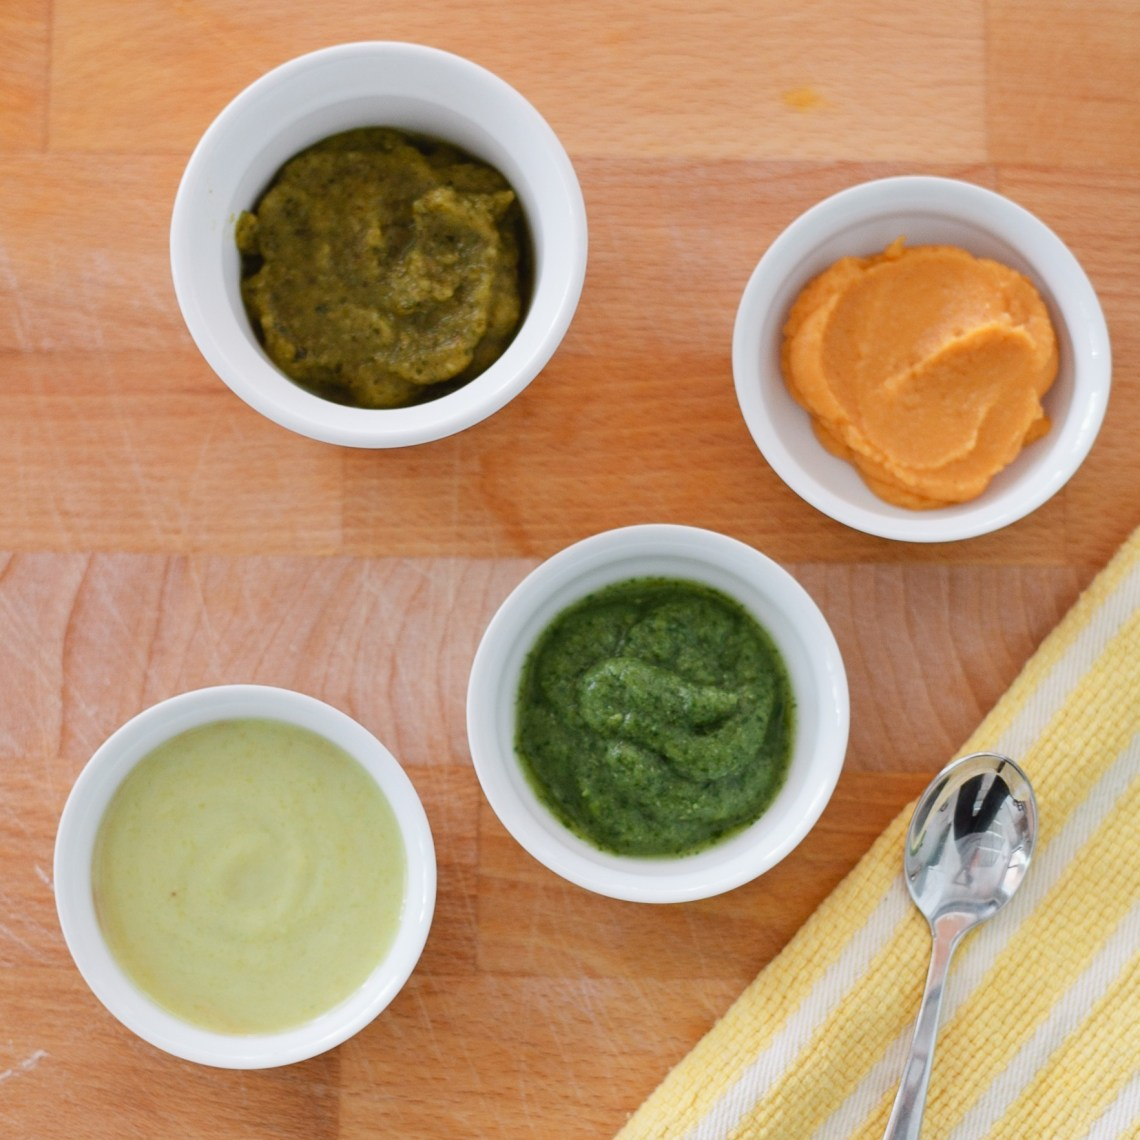 Eats homemade baby food fresh mommy blog a delicious selection of baby food recipes 1 sweet potato with apple and cinnamon 2 spinach pear and pea 3 banana avocado pineapple and yogurt forumfinder Images